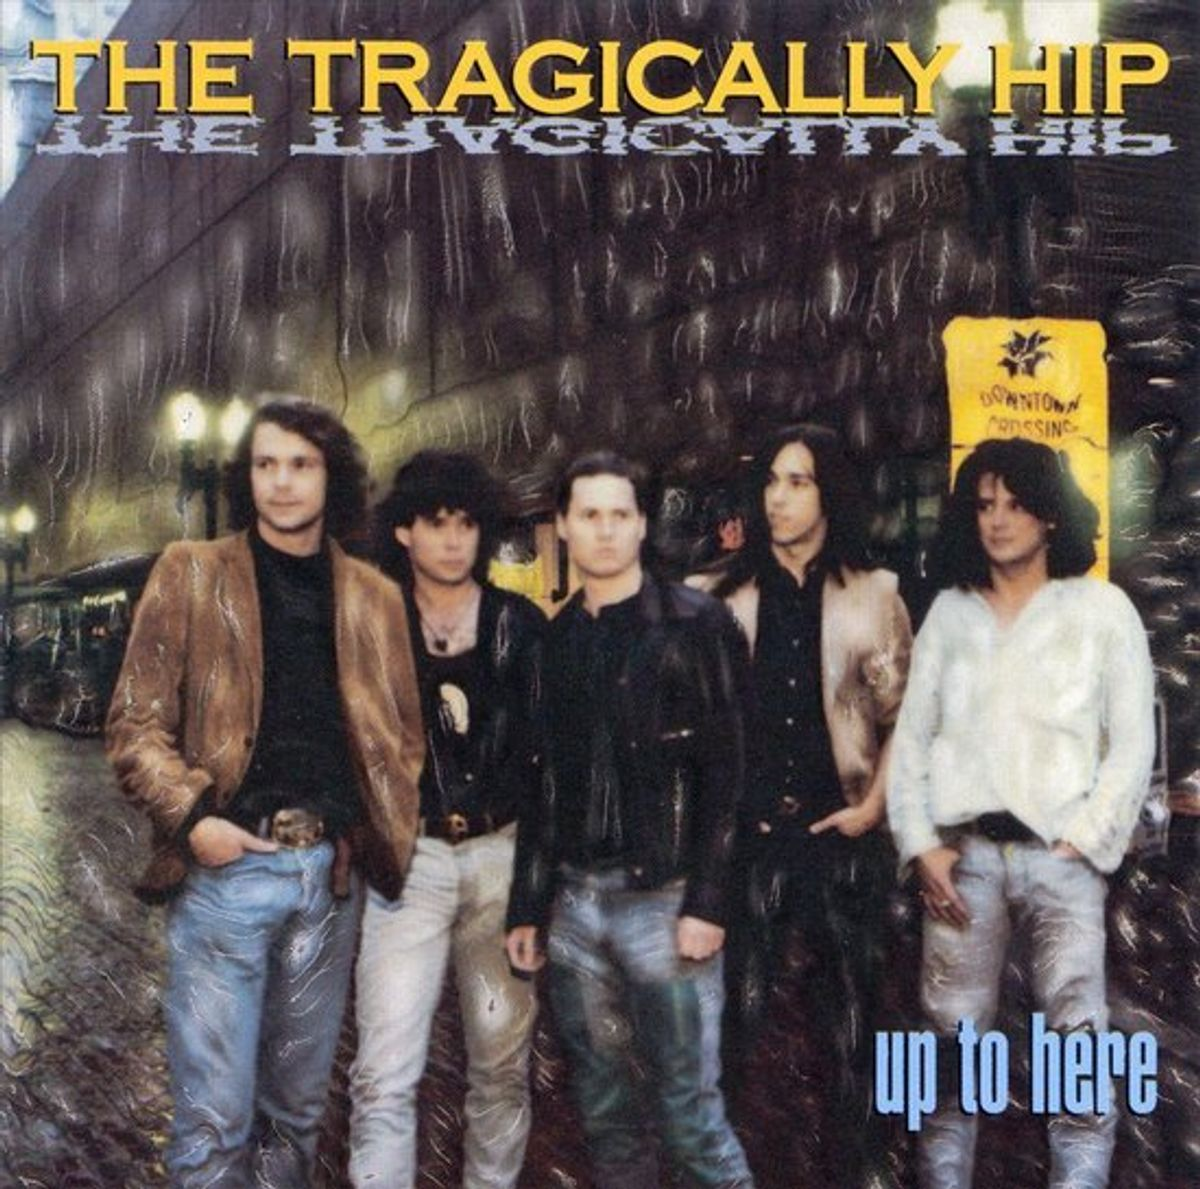 #NewOrleans - The Tragically Hip - New Orleans Is Sinking (1989)